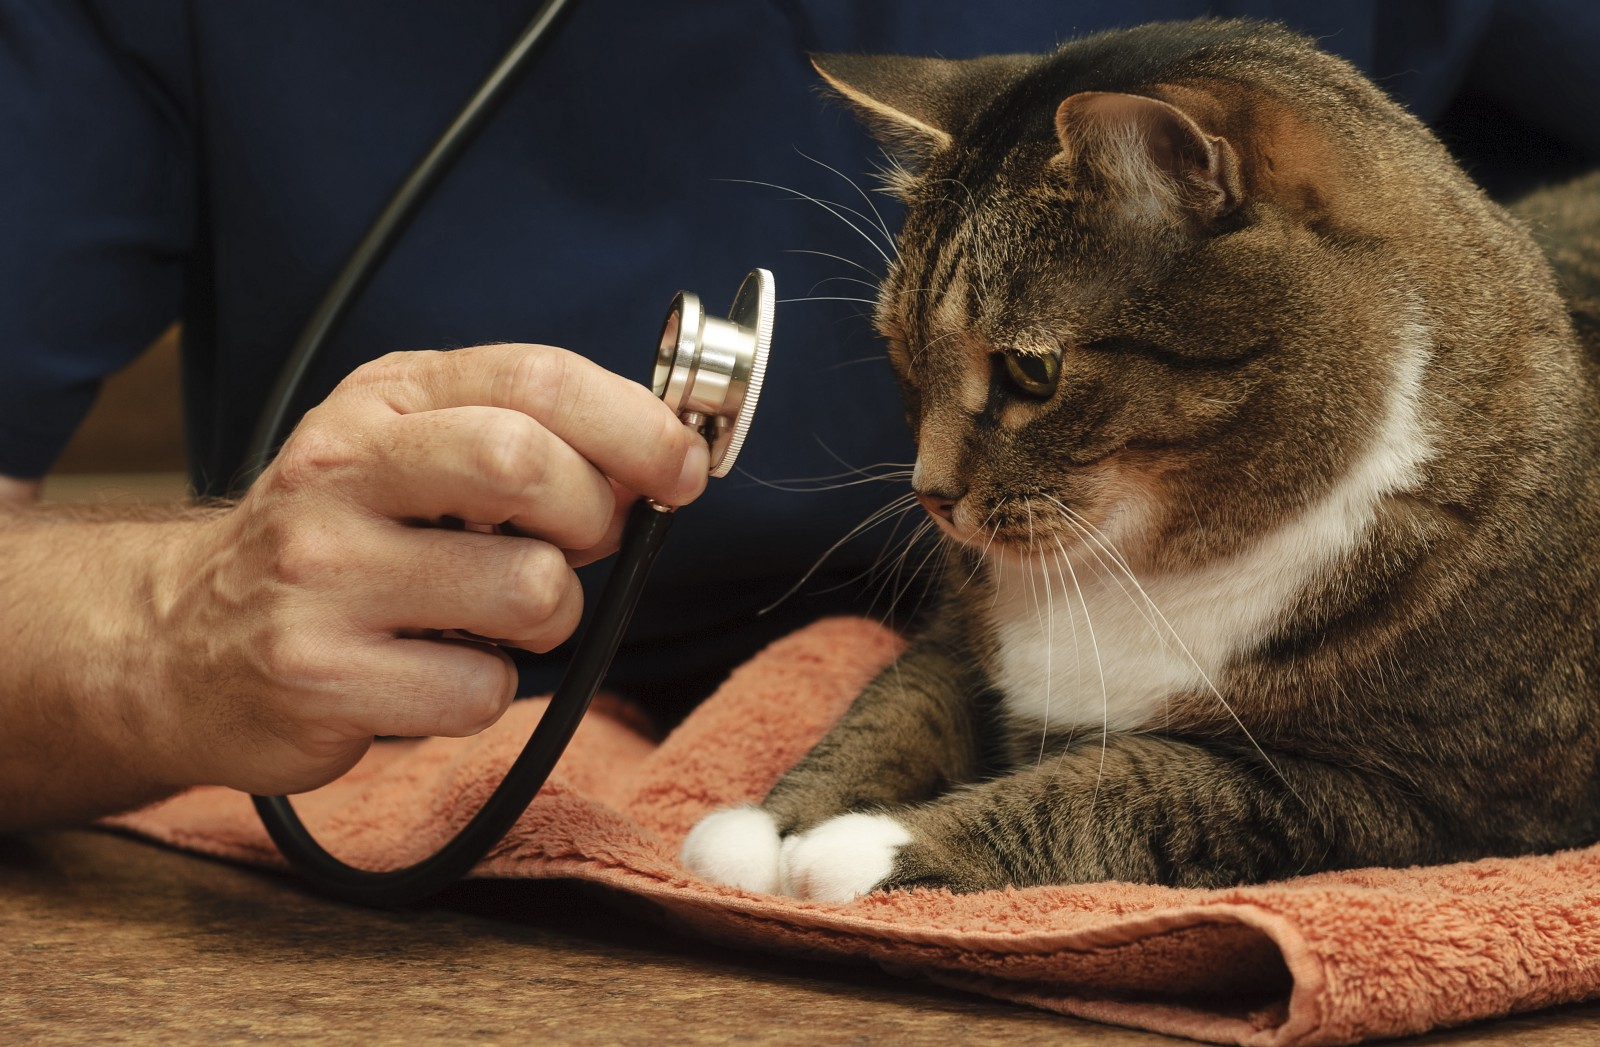 reducing cat stress during veterinary visits - HD1600×1047